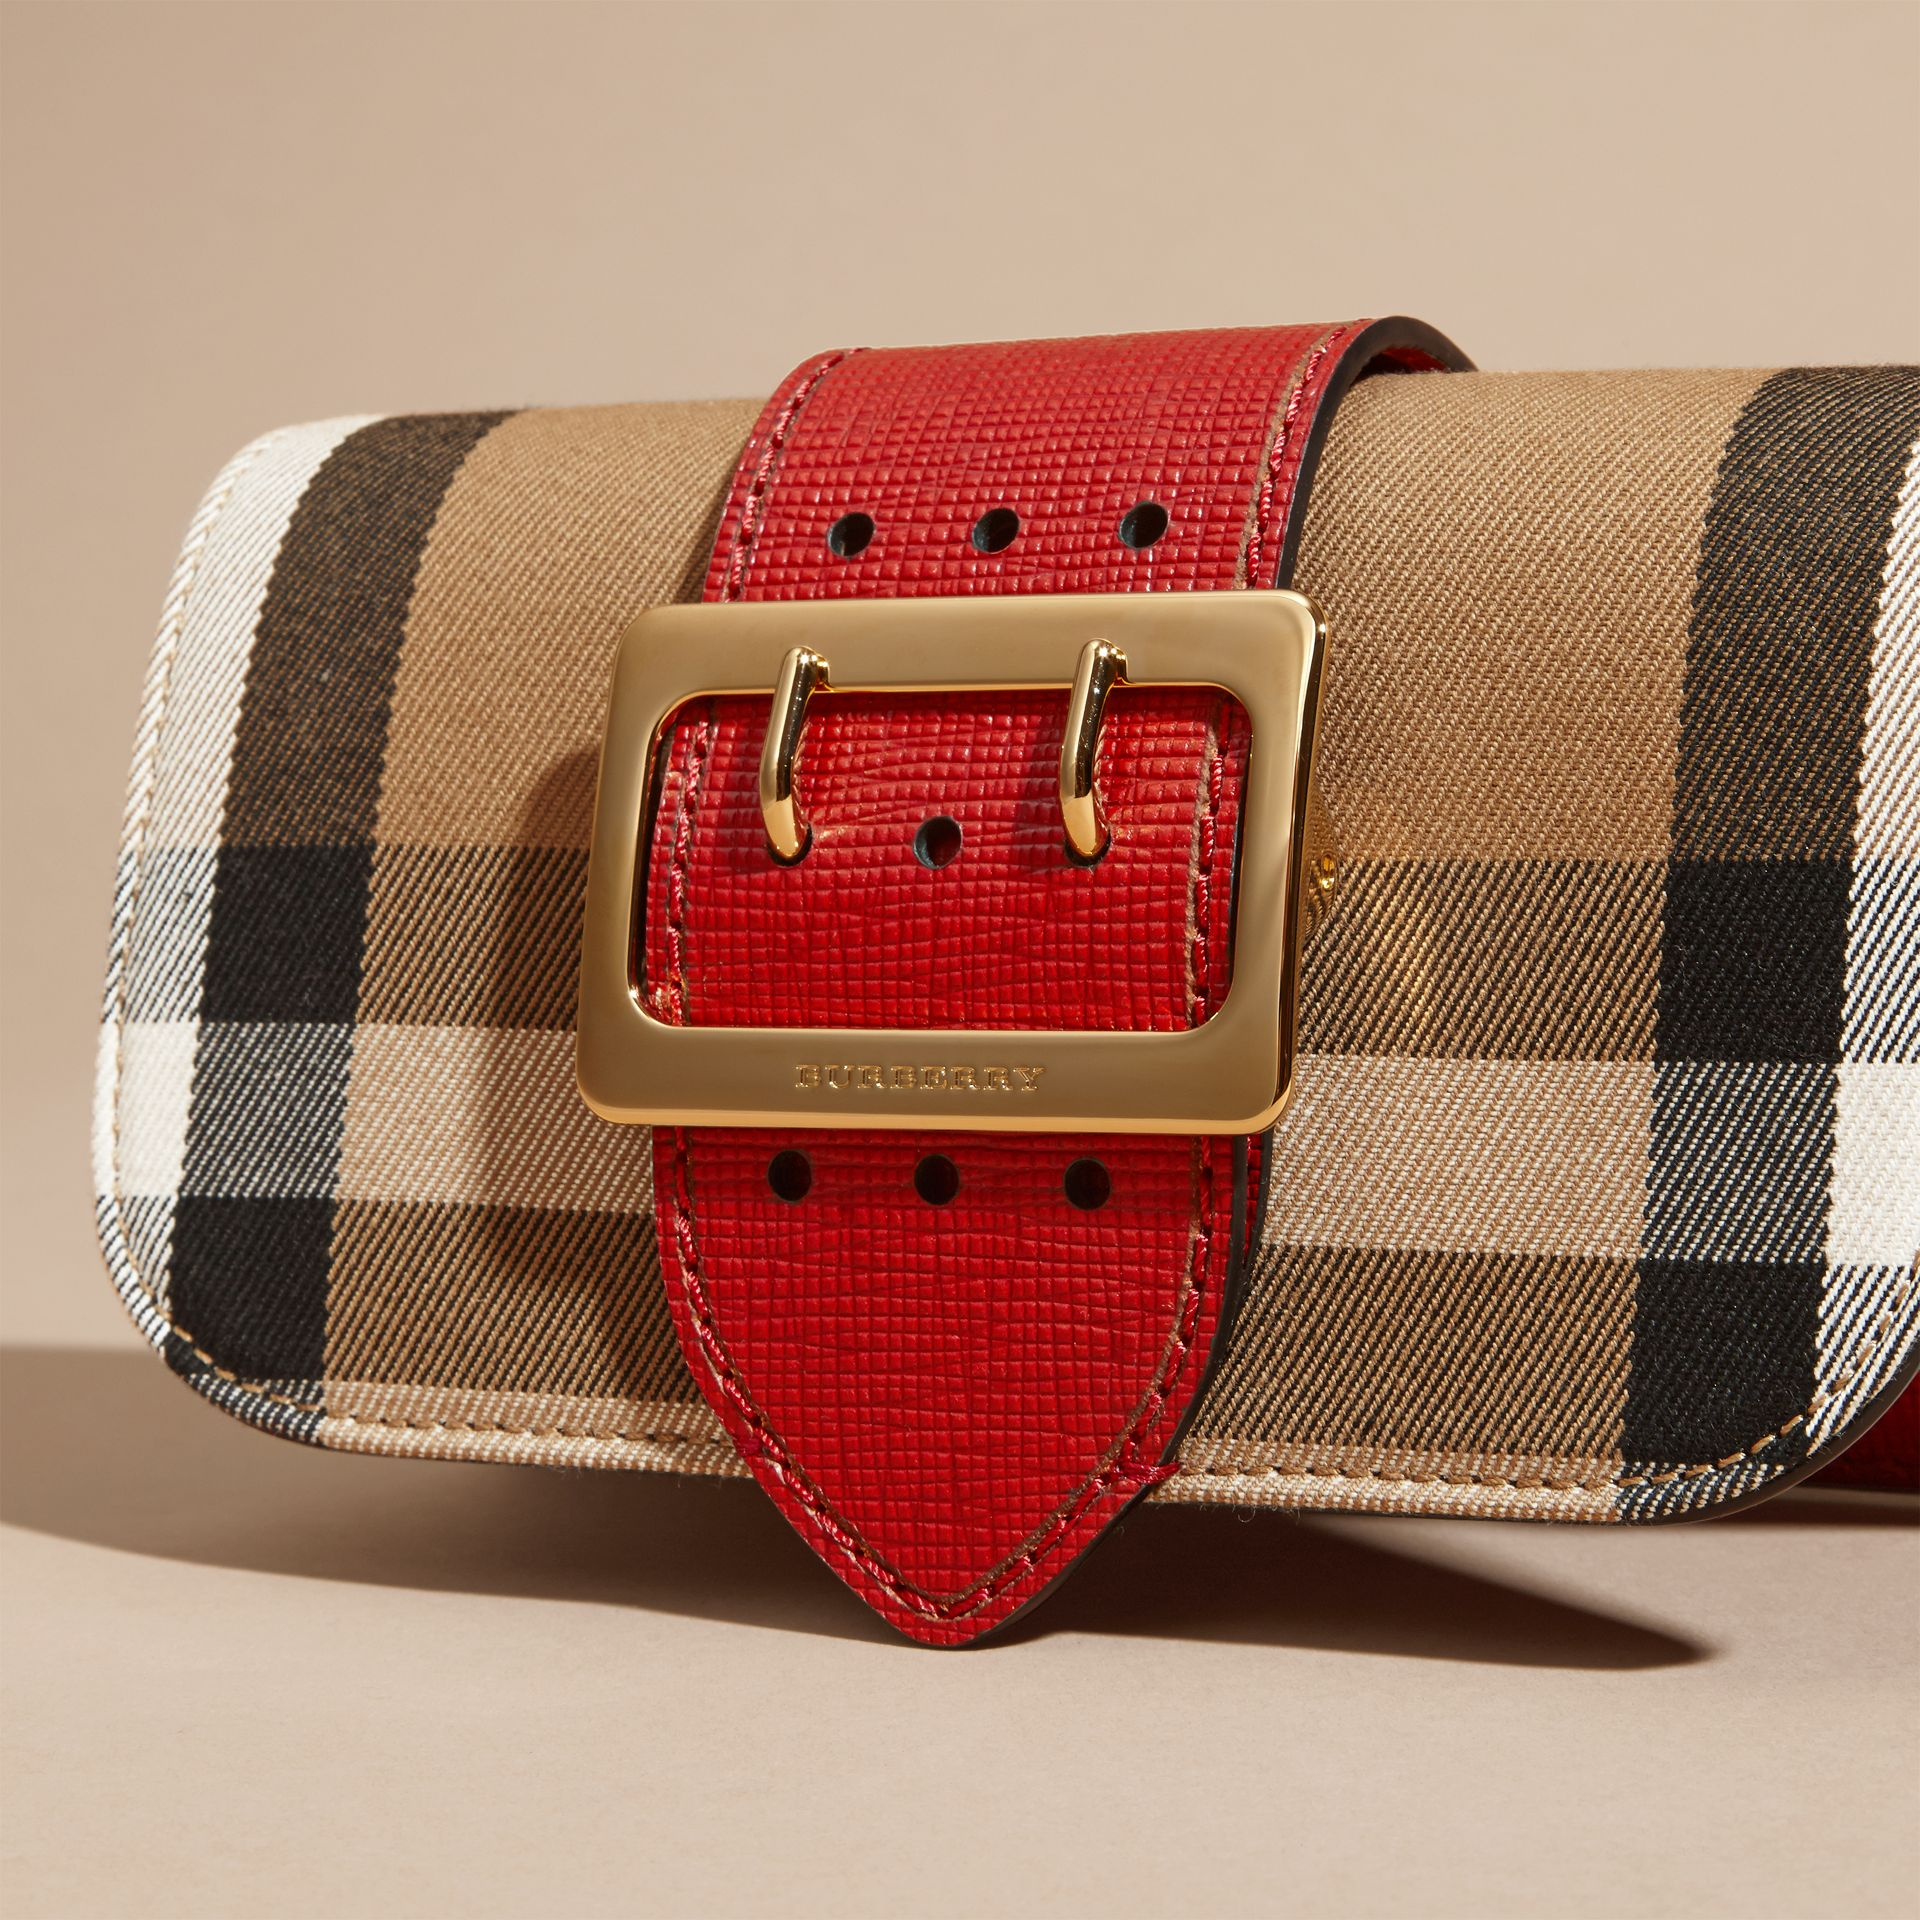 The Small Buckle Bag in House Check and Leather in Military Red/military Red - Women | Burberry - gallery image 2